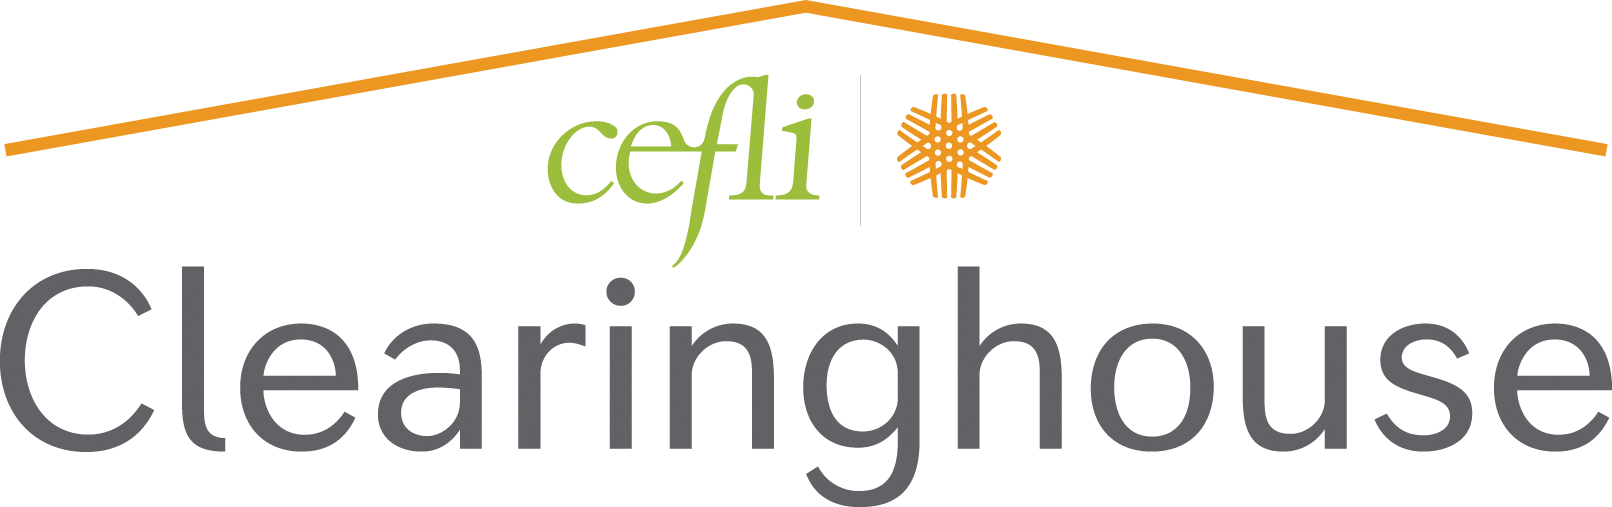 CEFLI Clearinghouse